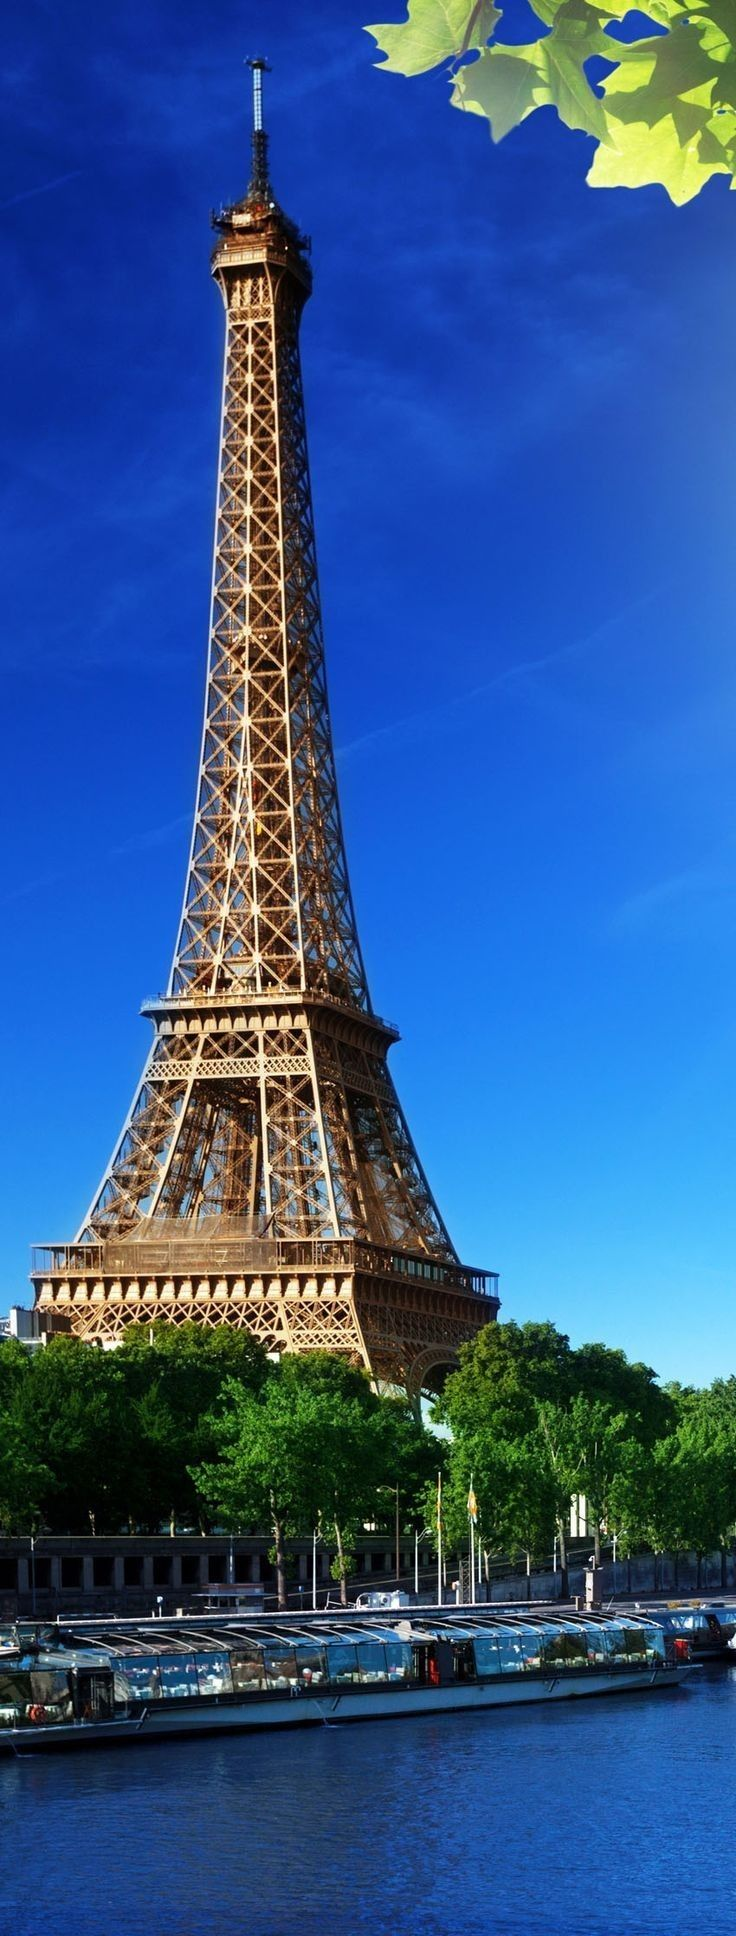 Paris in Summer. Find out what the the spots you must take photos in this city.